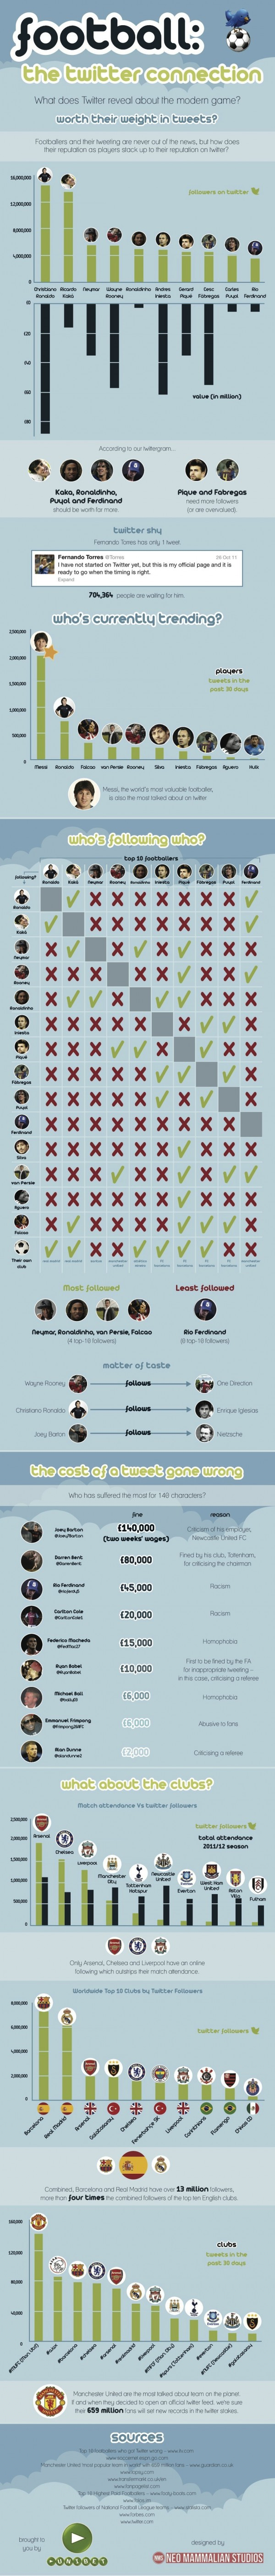 Twitter voetballers infographic